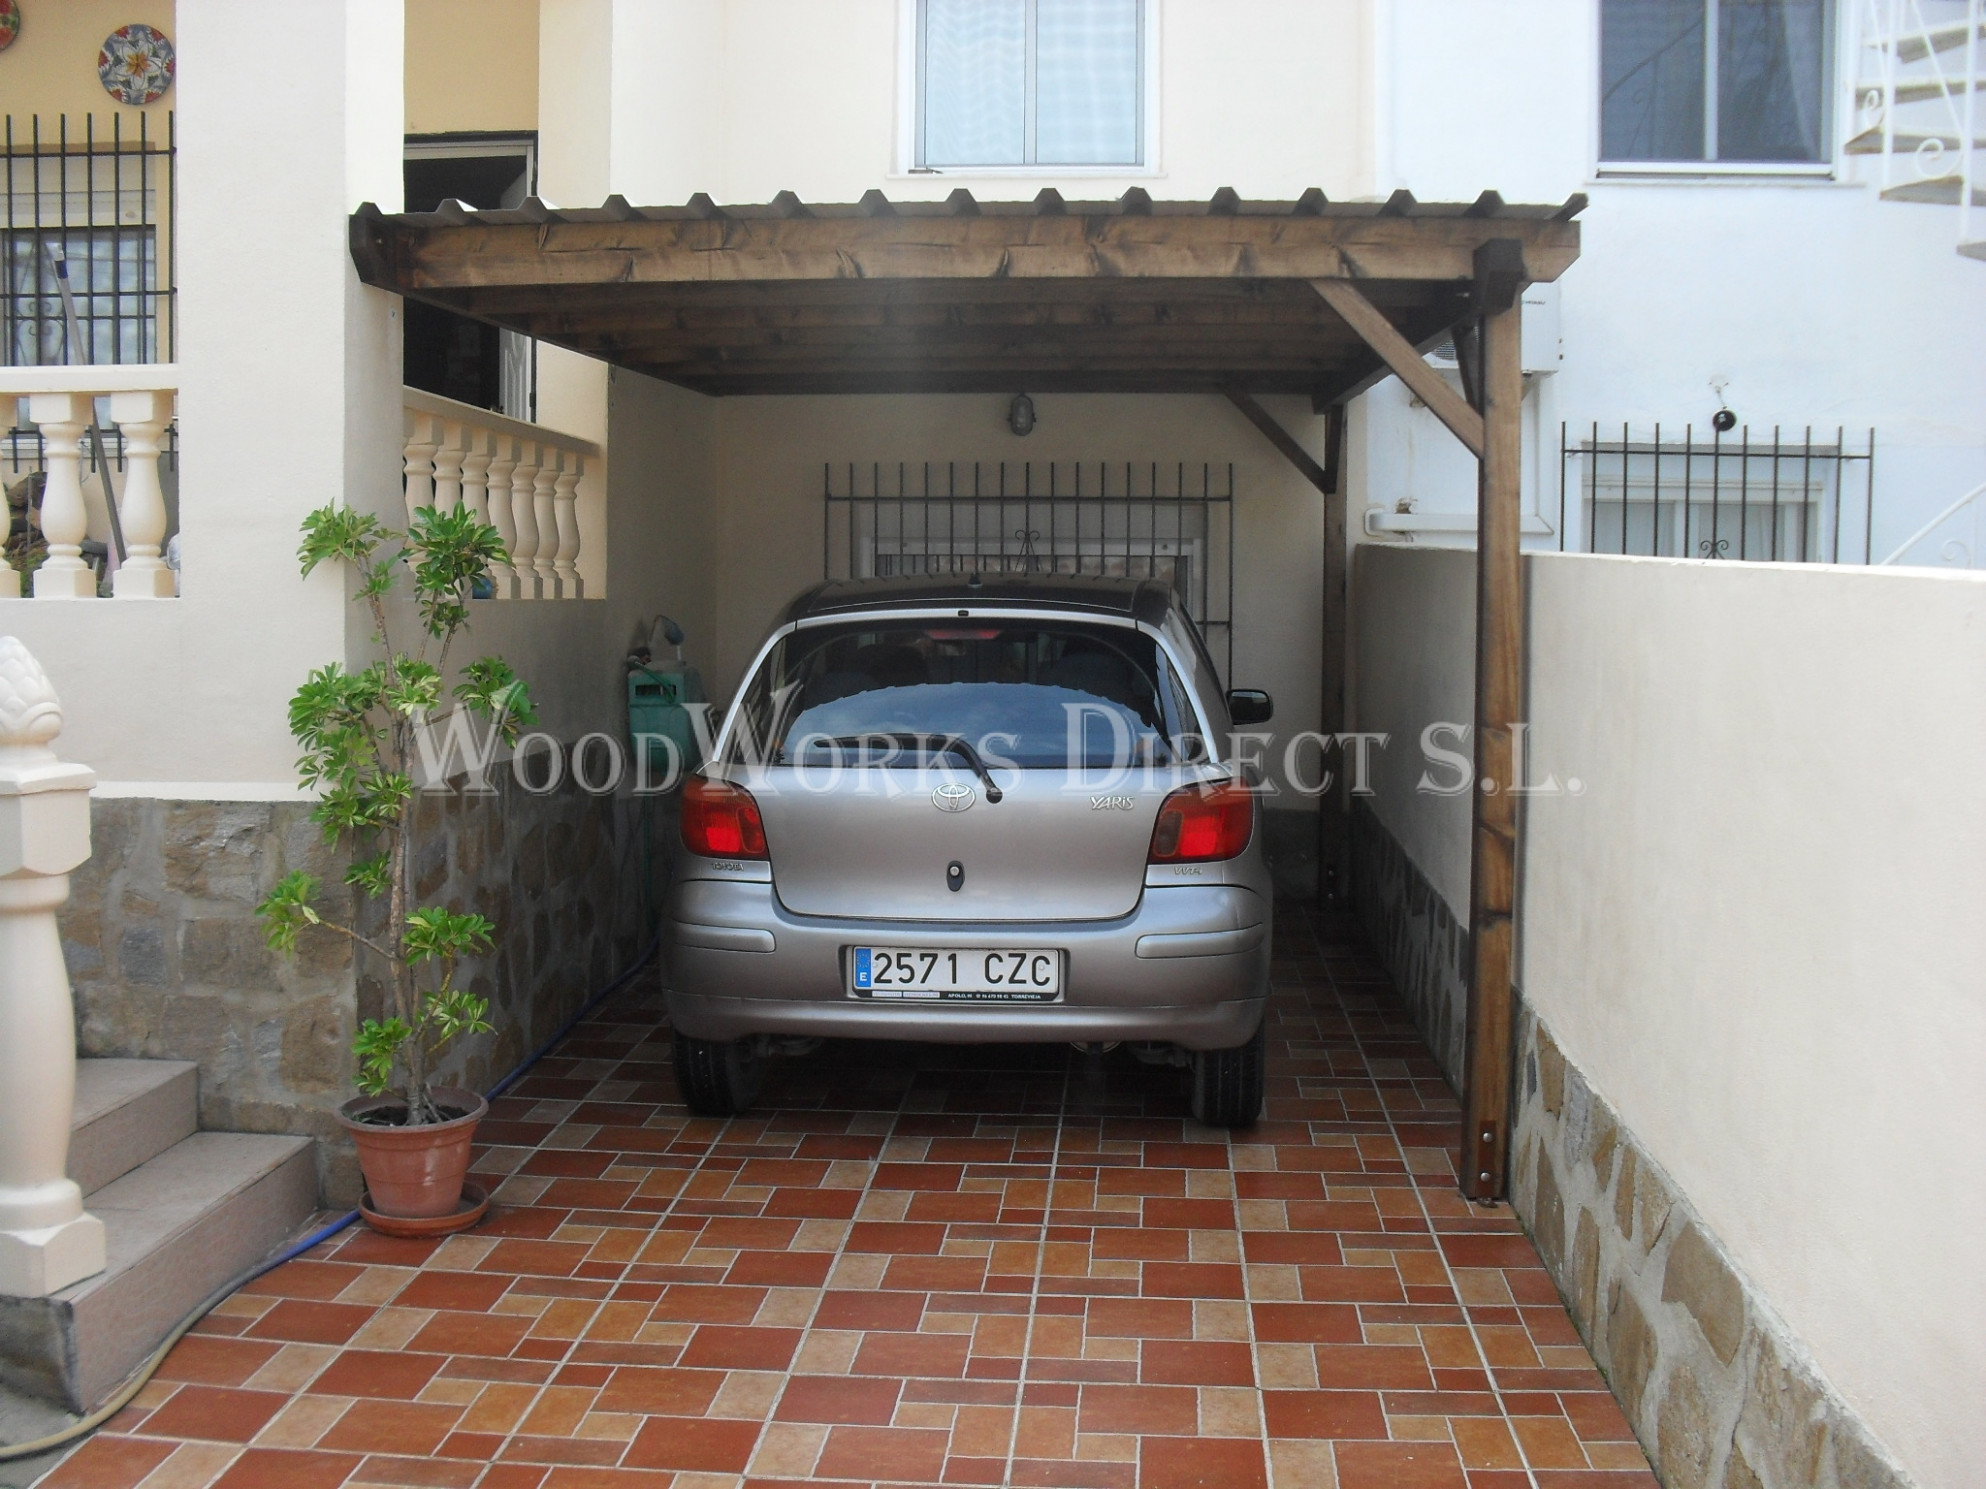 Solid Wooden Carports By WoodWorks Direct | Woodworks Direct Carports Ideas Reddit